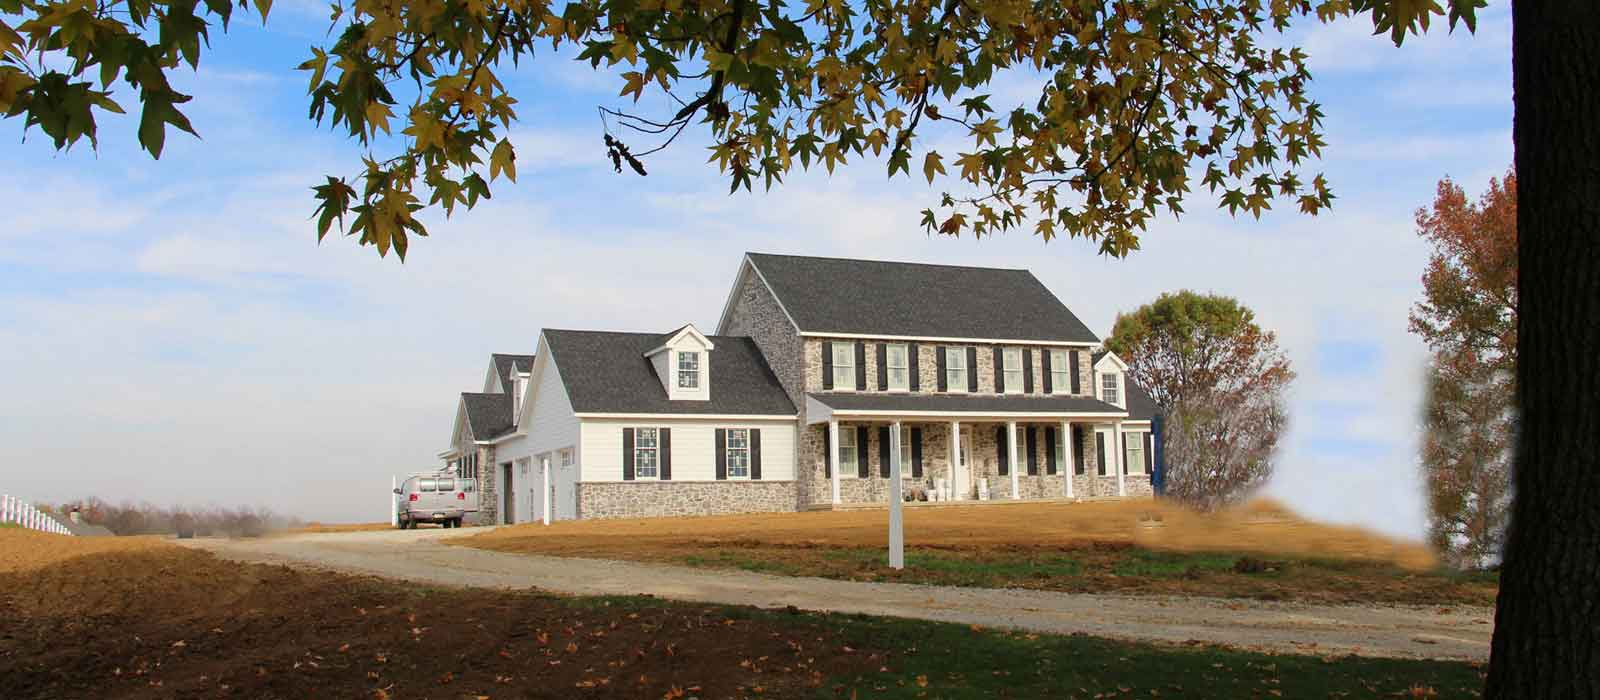 Existing homes at Farview Farms Estates.